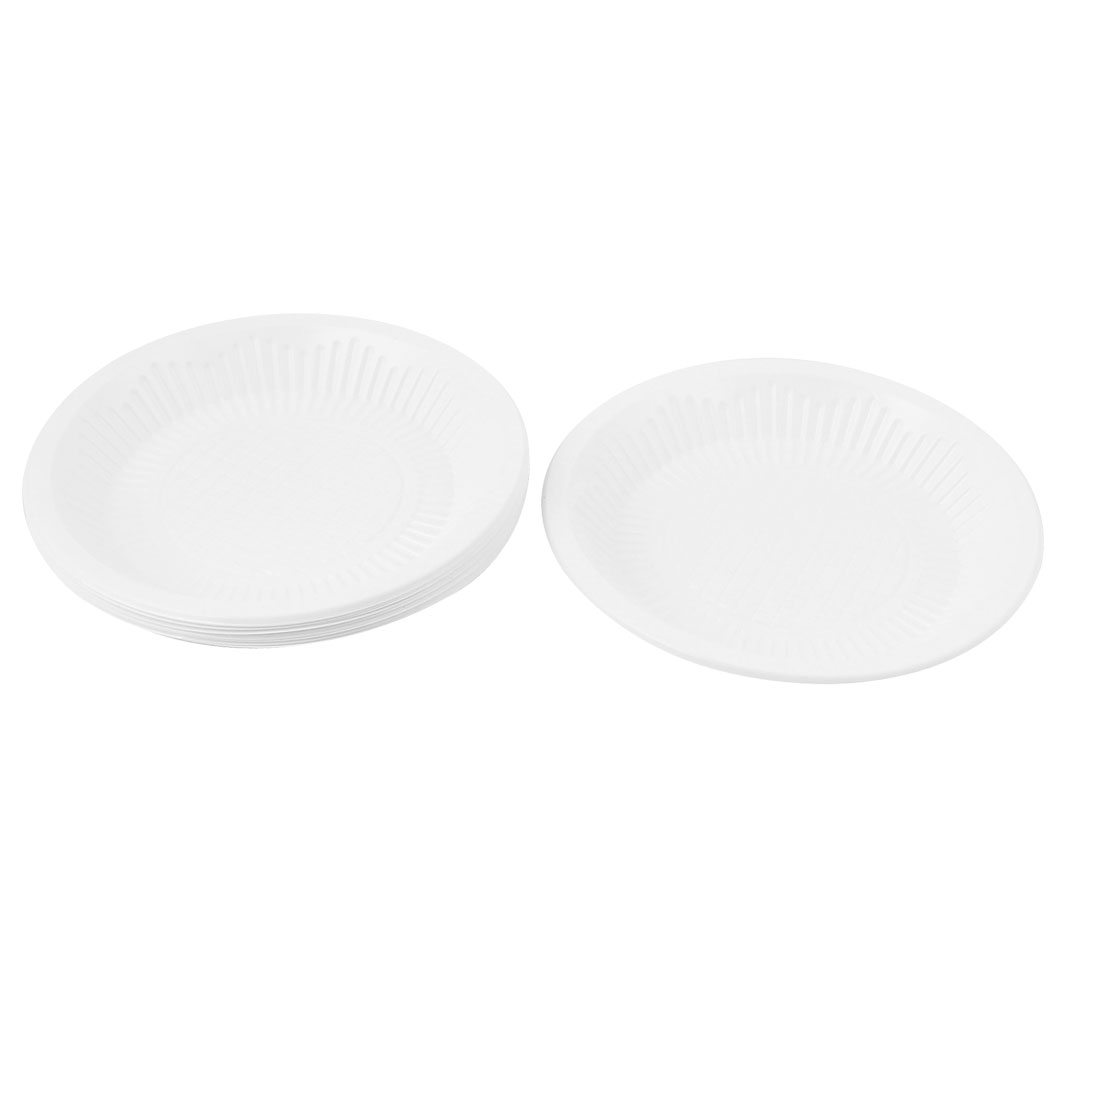 10 PCS Festival Birthday Party Dessert White PVC Disposable Dishes Plate Tray